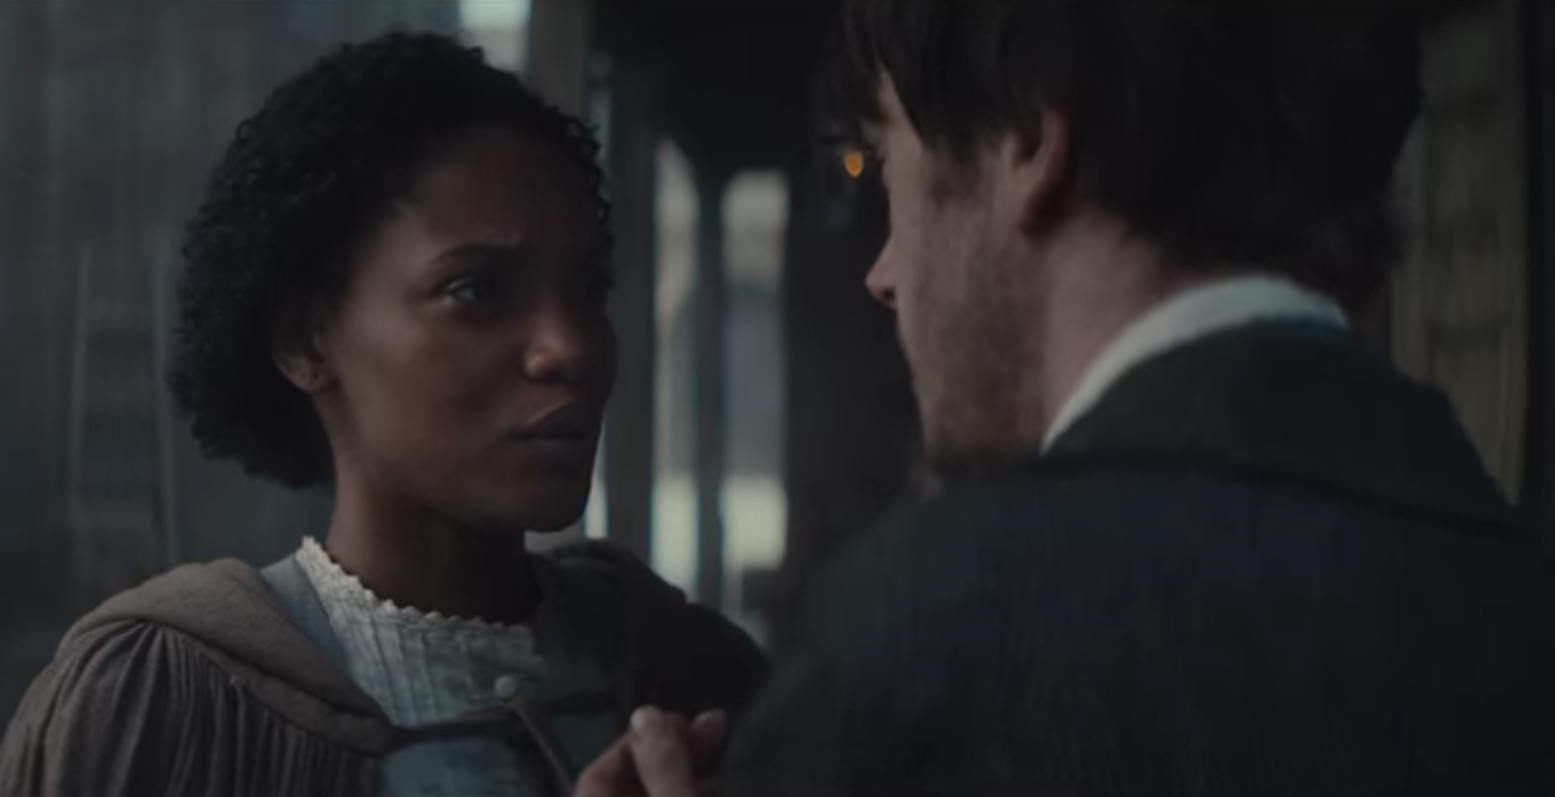 Ancestry.com Apologizes For Slavery-Era Ad Featuring White Man And Black Woman